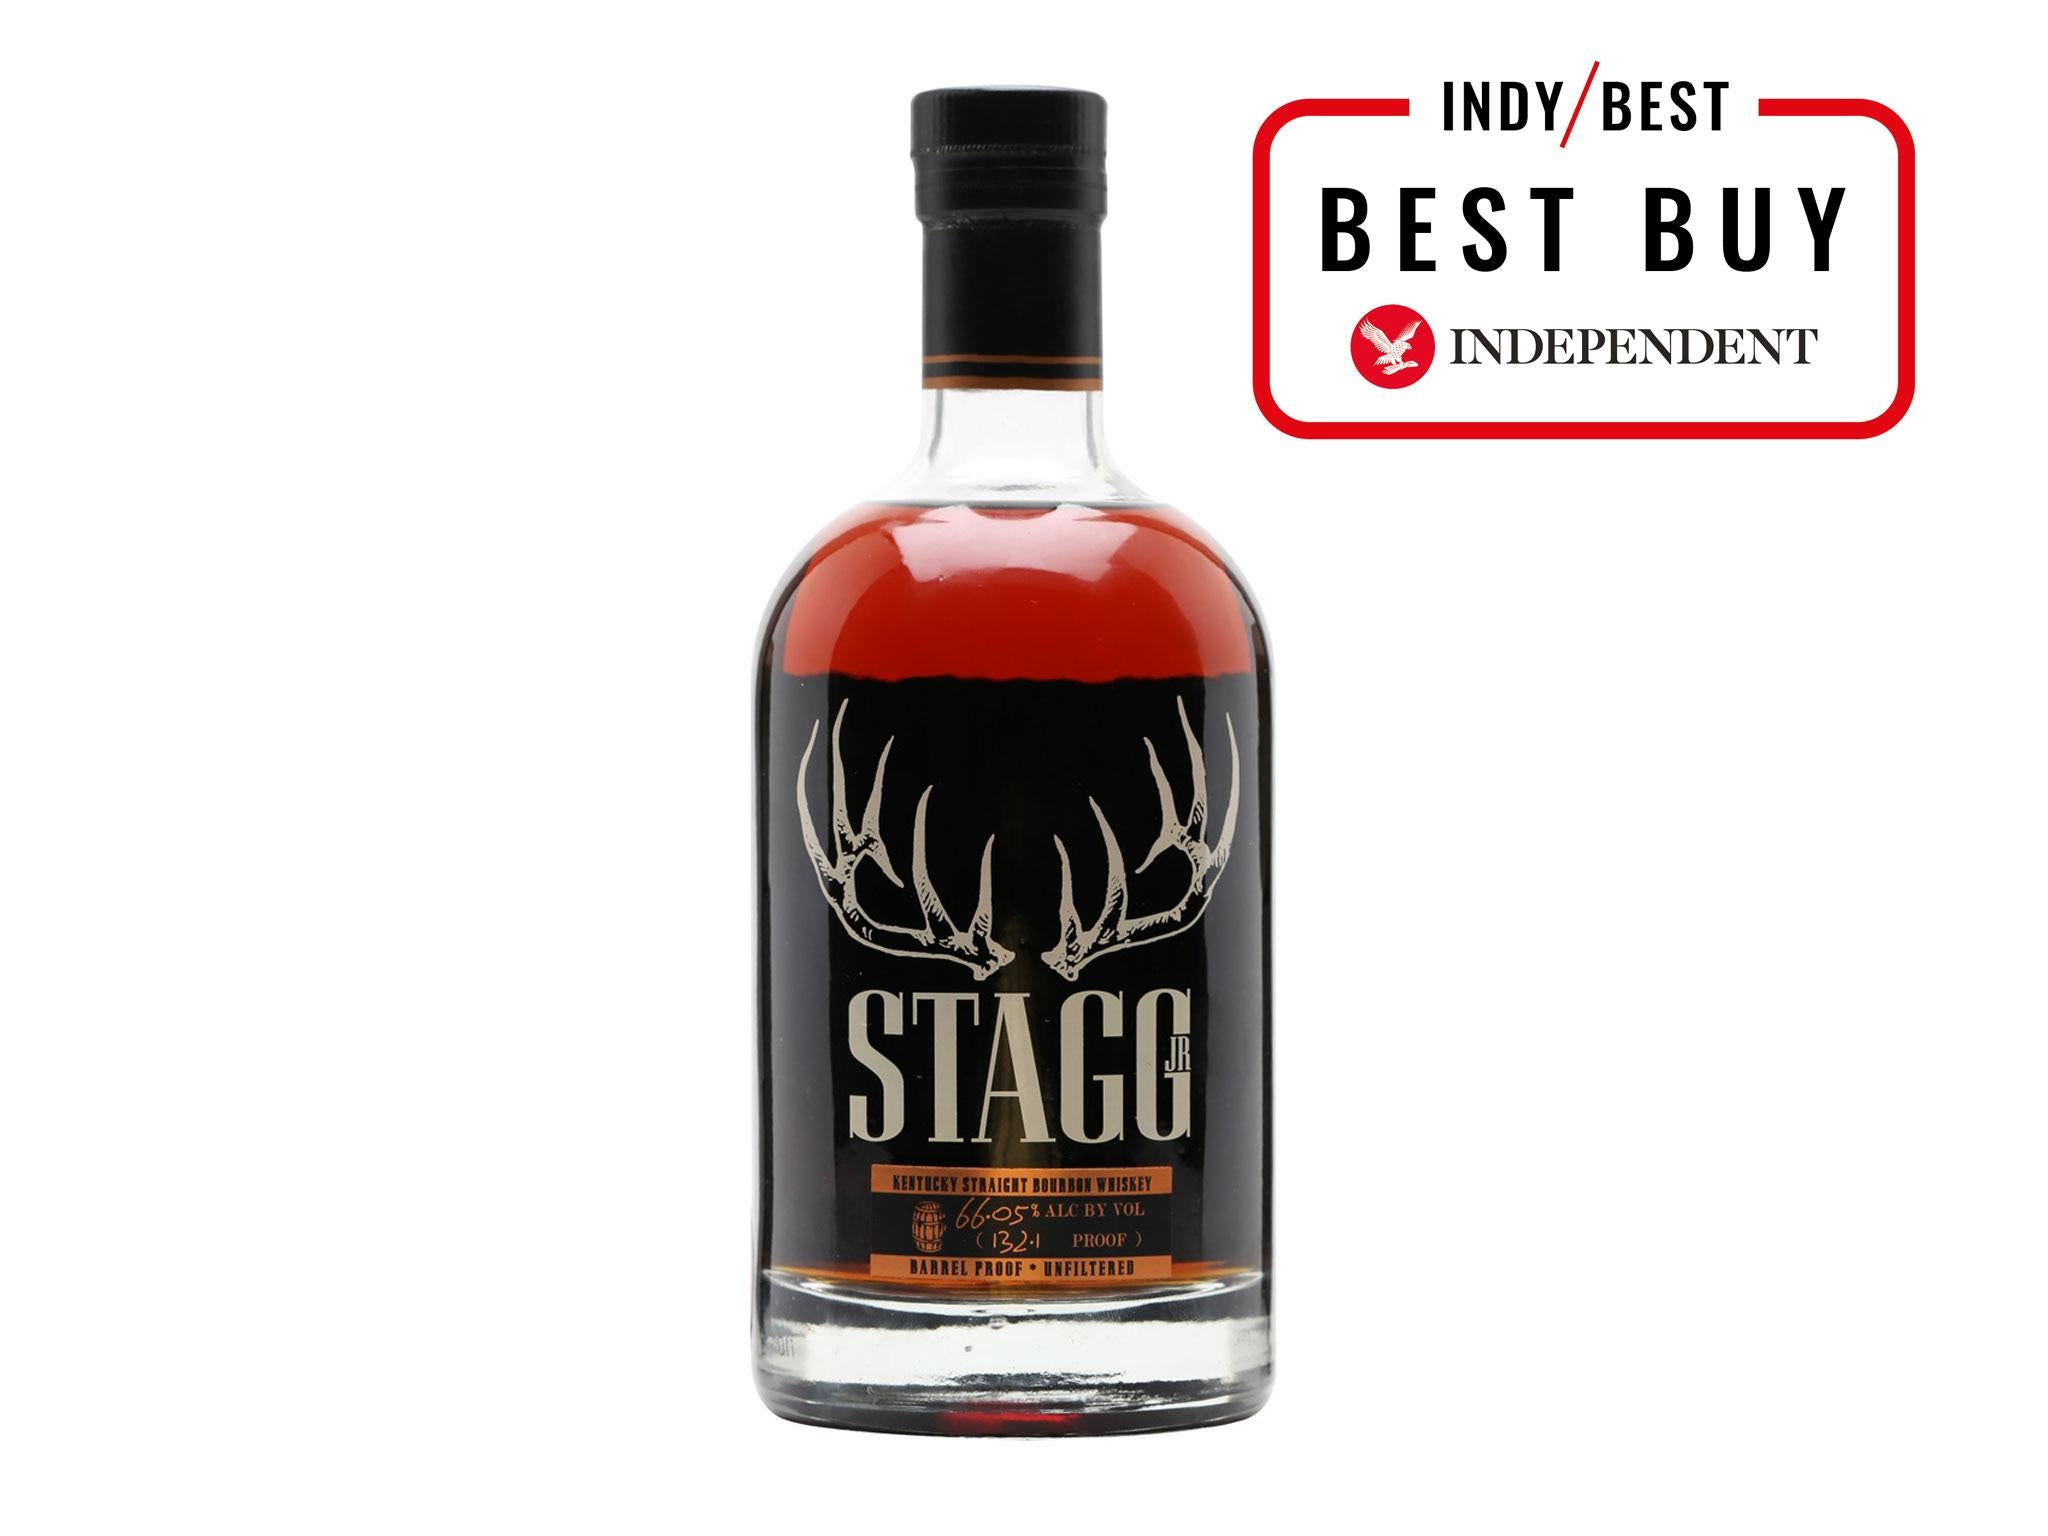 14 best American whiskies | The Independent